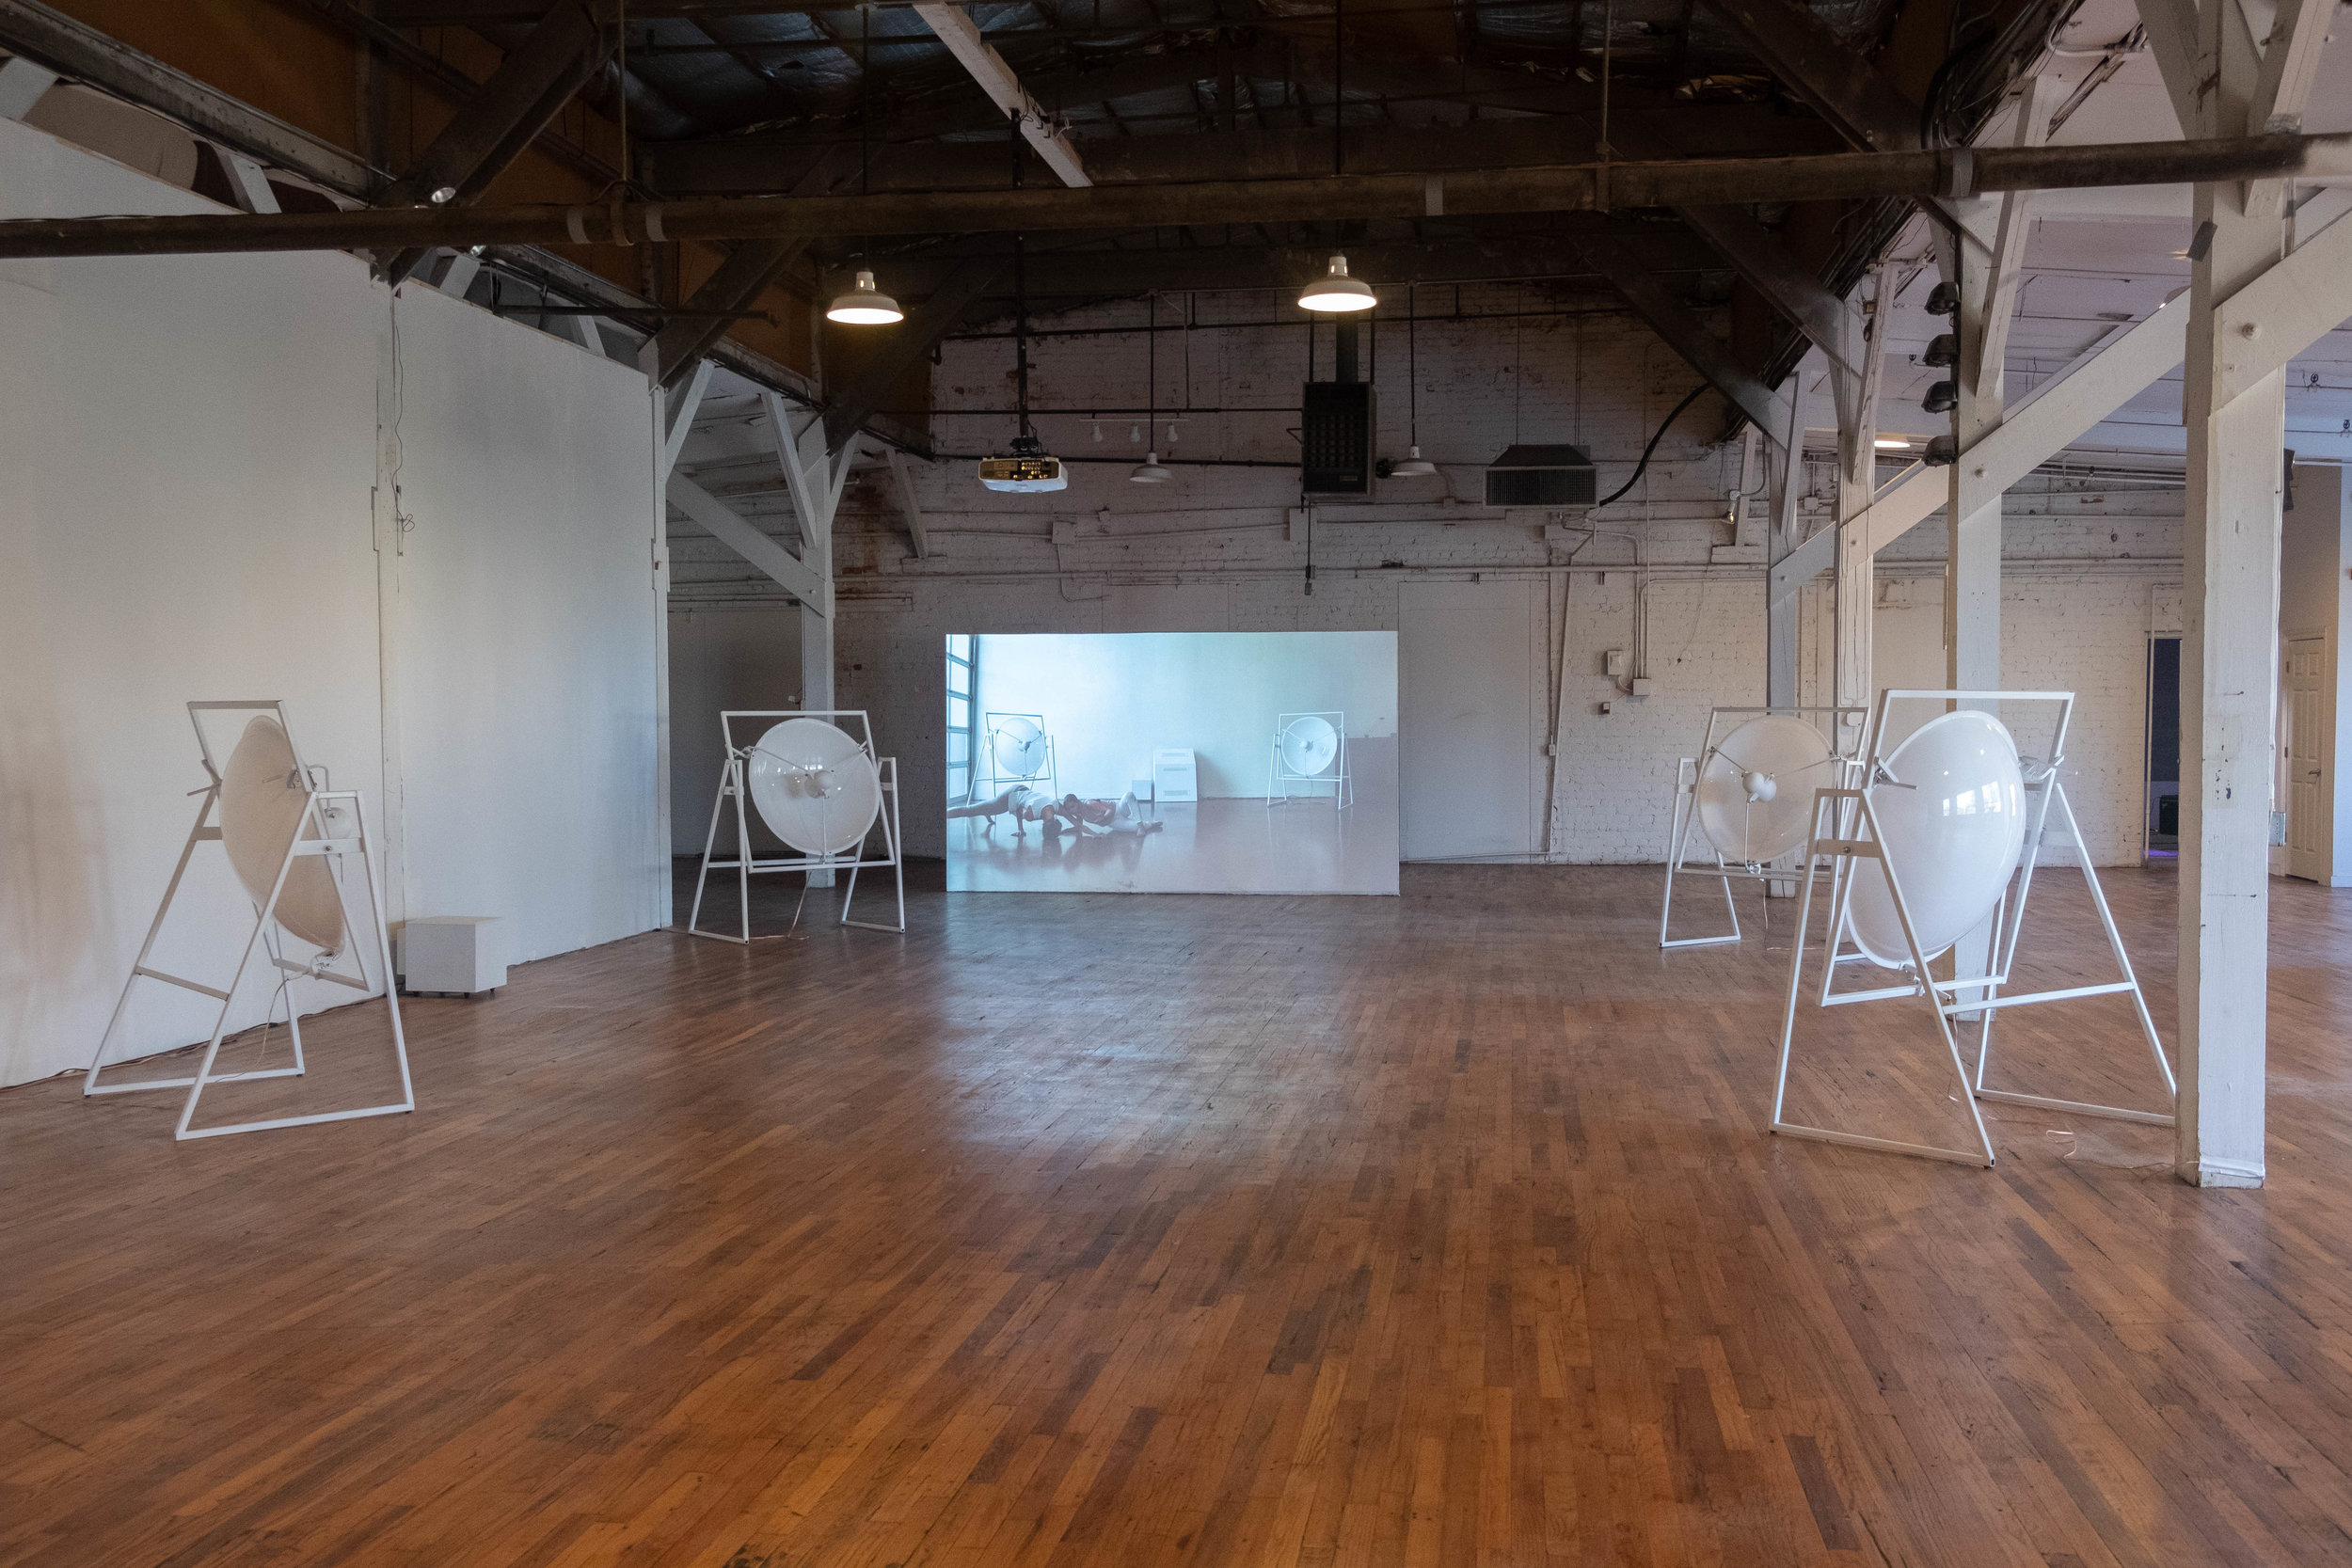 My Heart But Spare My Soul: Conversation with Alison O'Daniel, César Leal, and Greg Pond - CONVERSATION | 11.18.2018 @ Stove WorksChattanooga-based art space Stove Works in collaboration with Tennessee's Locate Arts + Seed Space opened Melt My Heart But Spare My Soul (Oct. 12 - 28), a multi-modal exhibition of sculpture, dance, video, sound, and installation that sensorially engaged new modes of sonic conveyance.+ Read More[Image: Installation of guncotton (2018) in Melt My Heart But Spare My Soul. Image by Sarah-Anne Wagoner. Courtesy of Stove Works.]